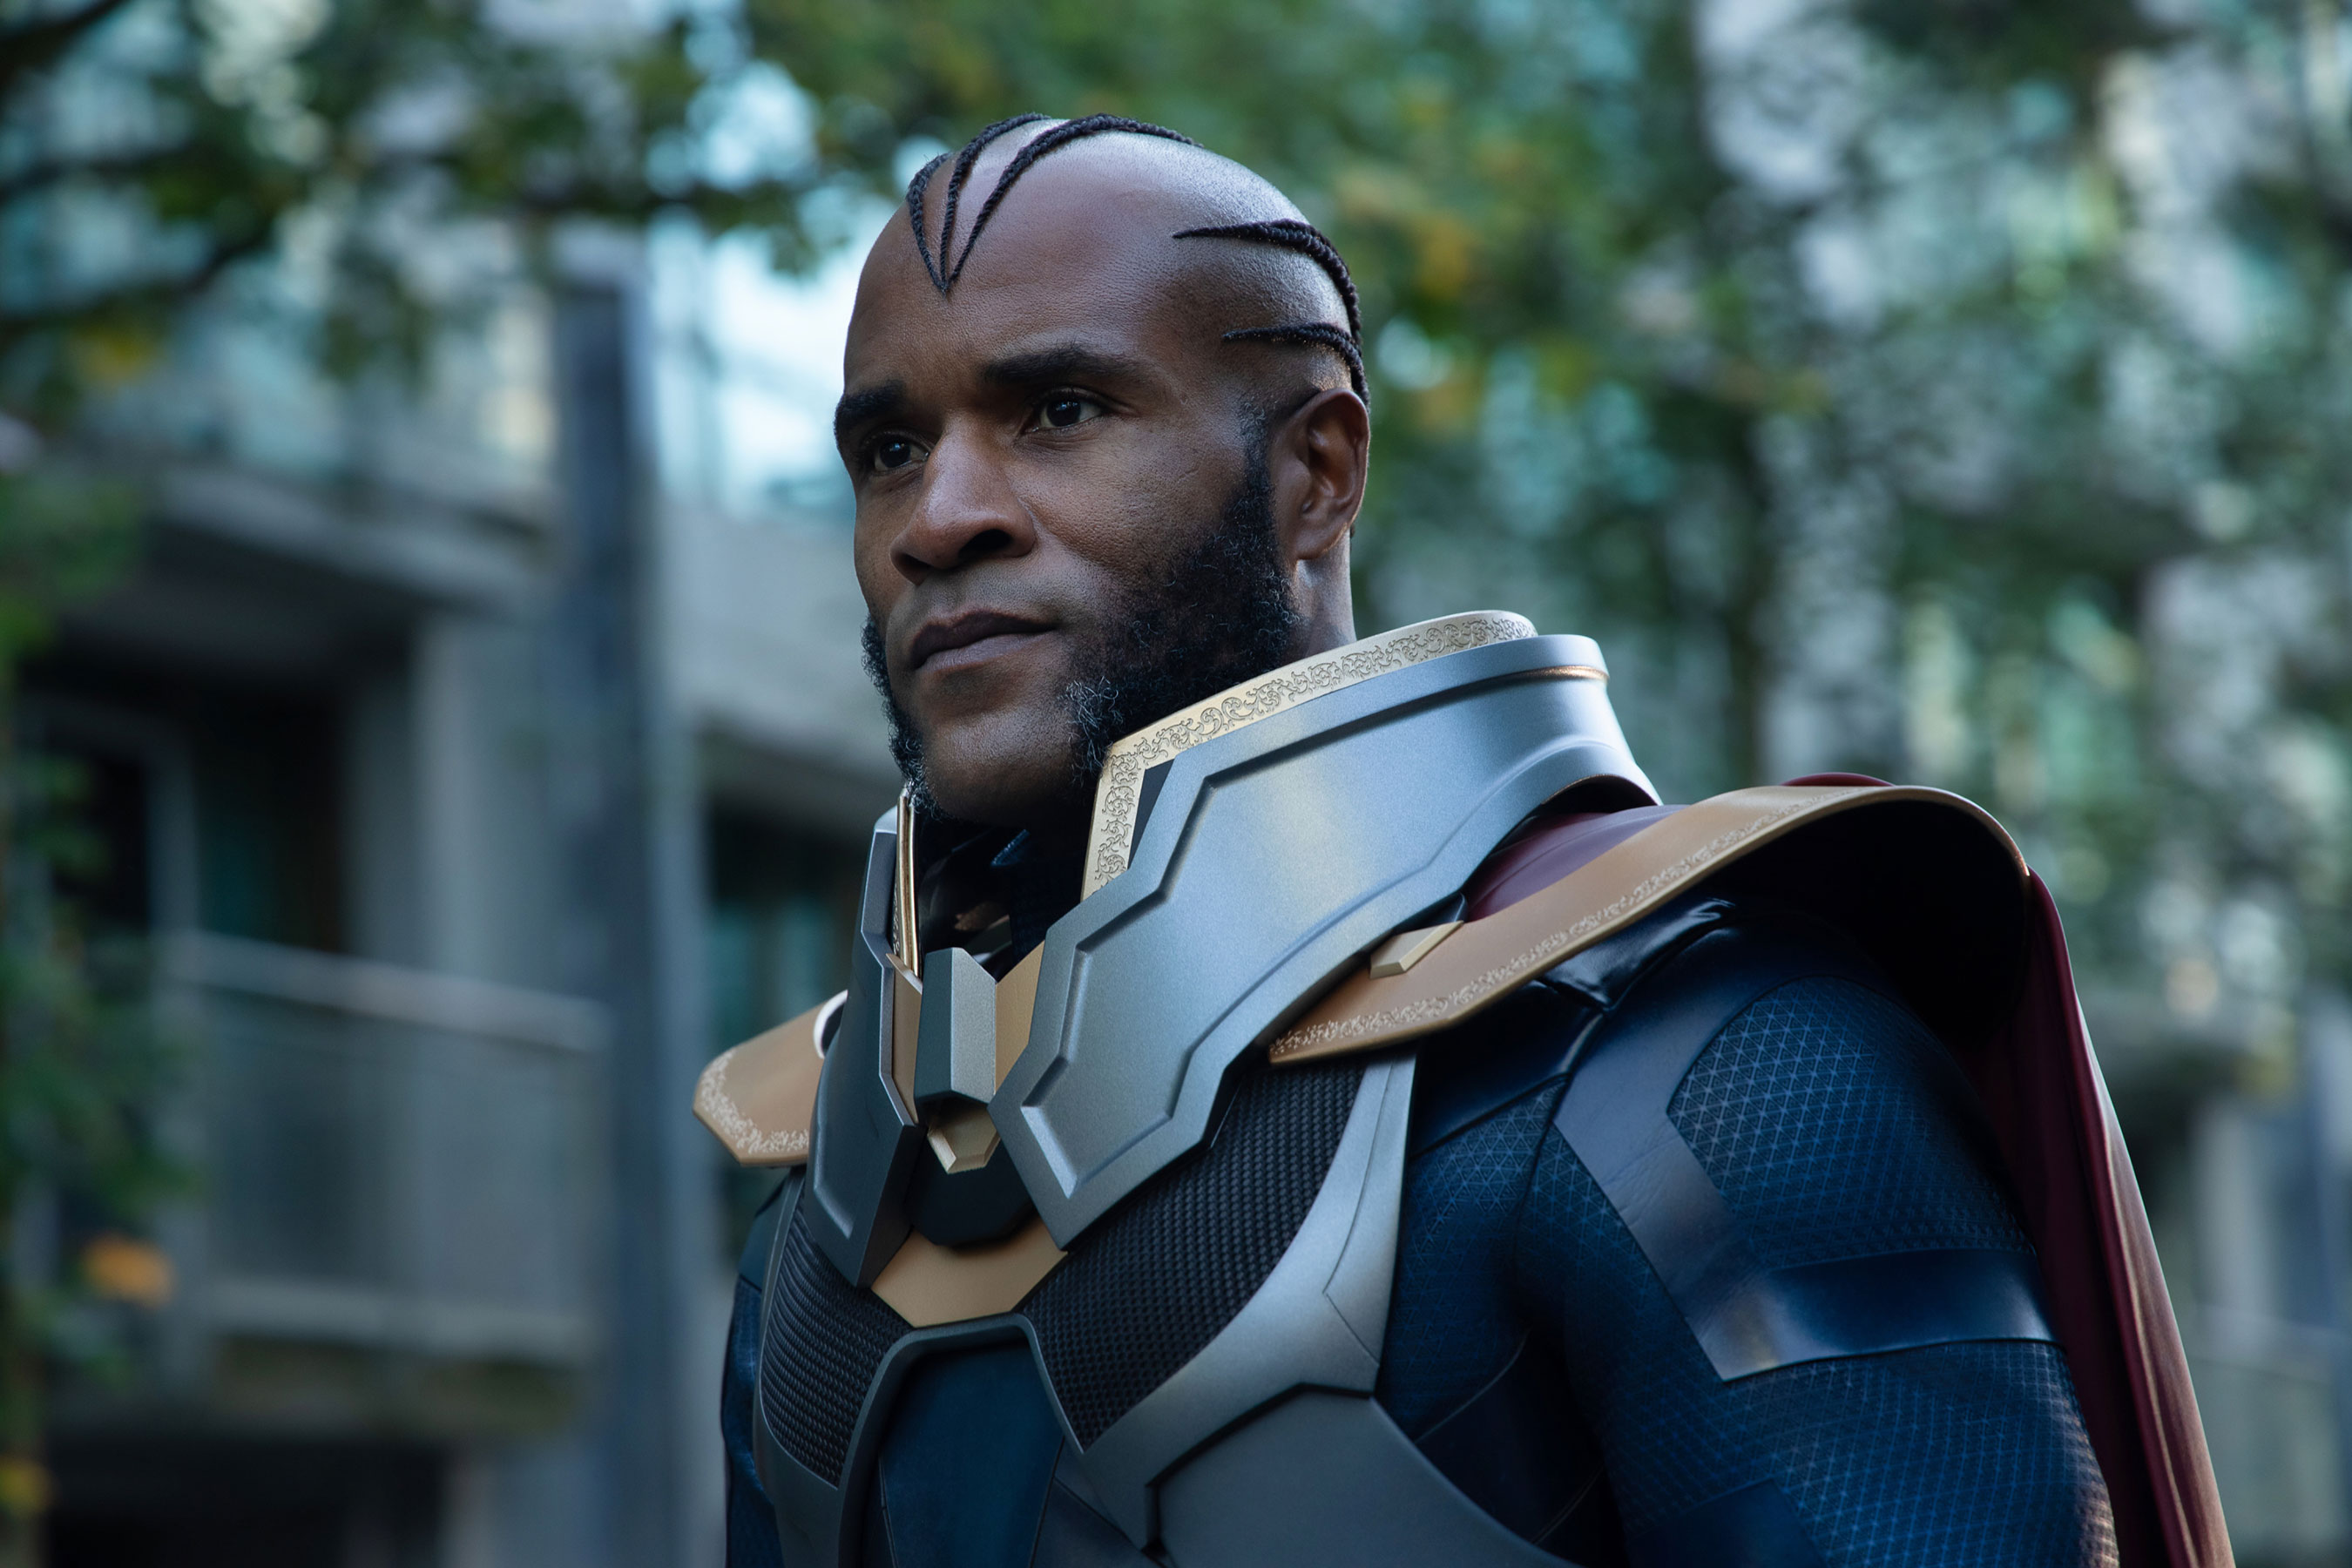 Elseworlds crossover star LaMonica Garrett on 'huge DC figure' the Monitor and his Arrowverse future